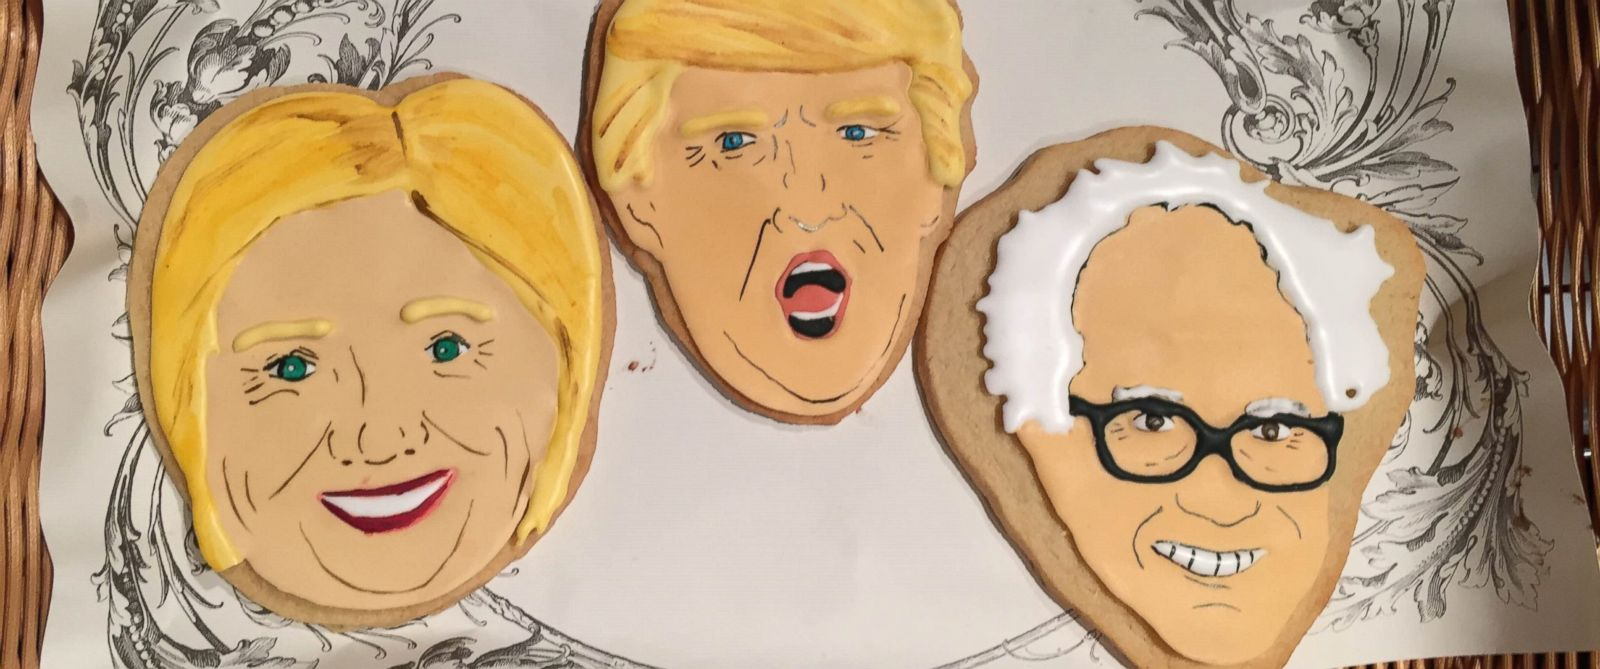 PHOTO: New York City bakery Cupcake Market sells hand painted, decorative cookies featuring 2016 candidates Hillary Clinton, Bernie Sanders and Donald Trump.